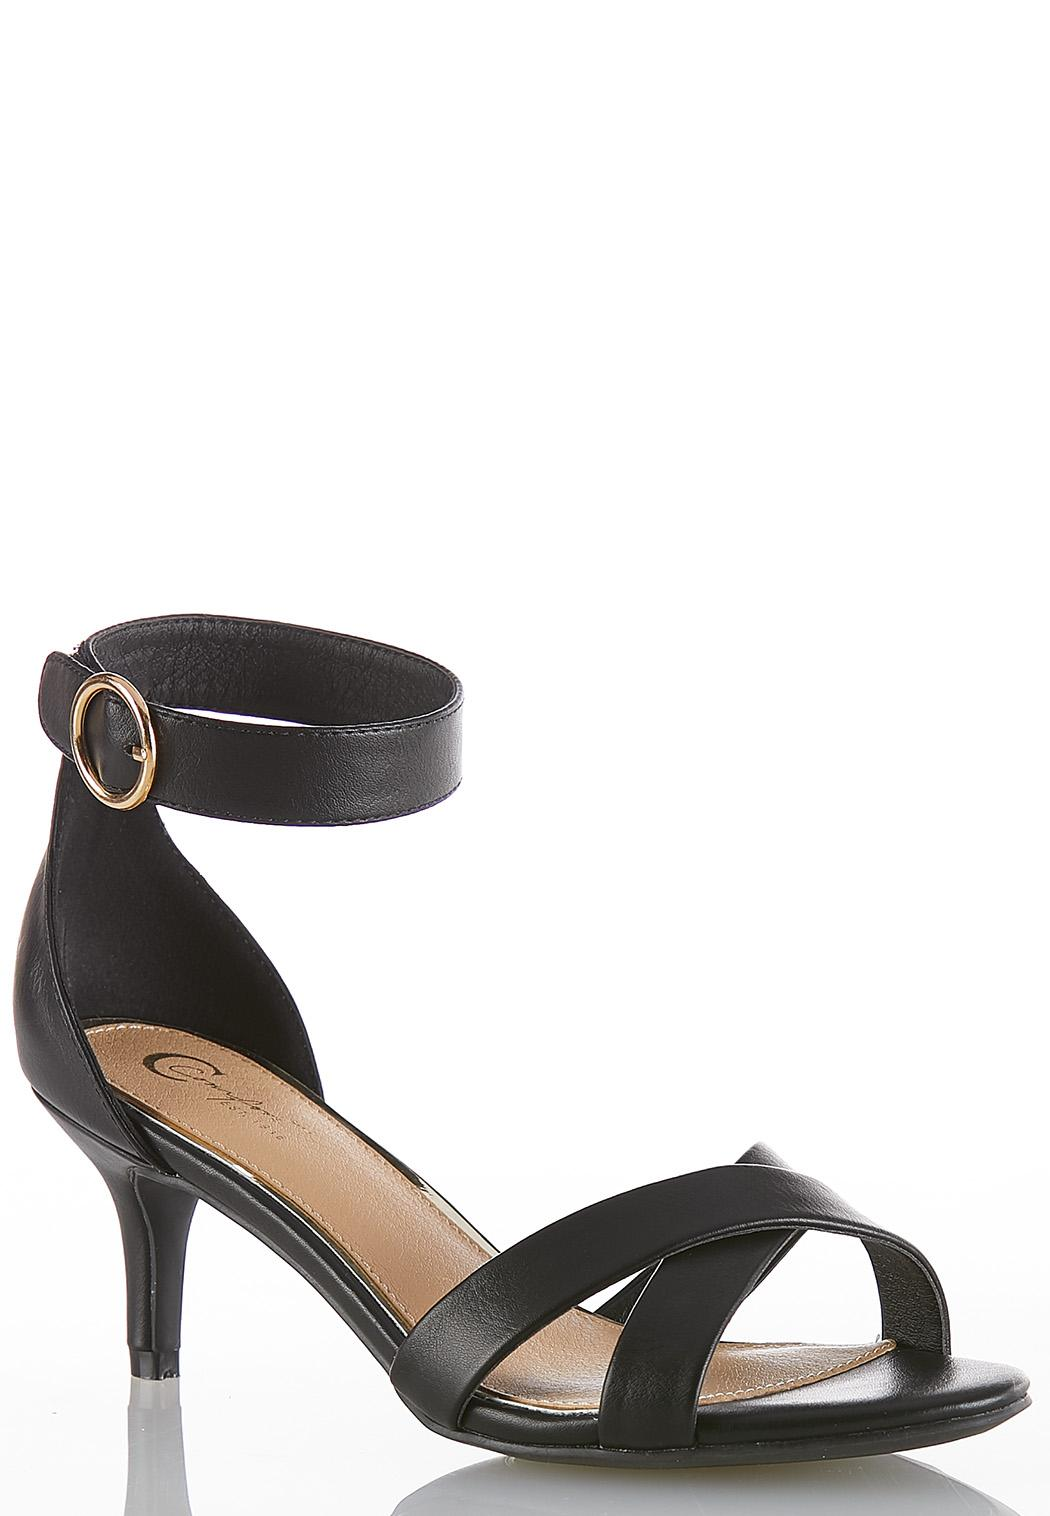 Ankle Strap Heeled Sandals